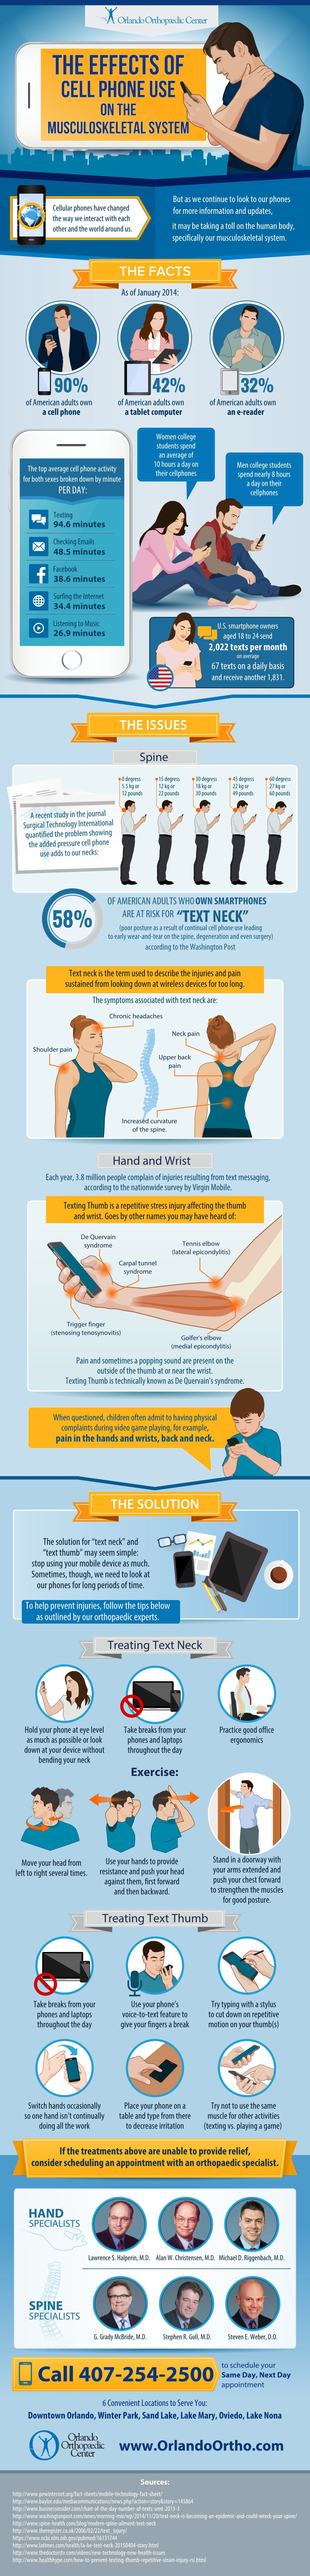 Infographic - The Effect of Cell Phone Use on Your Neck and Fingers